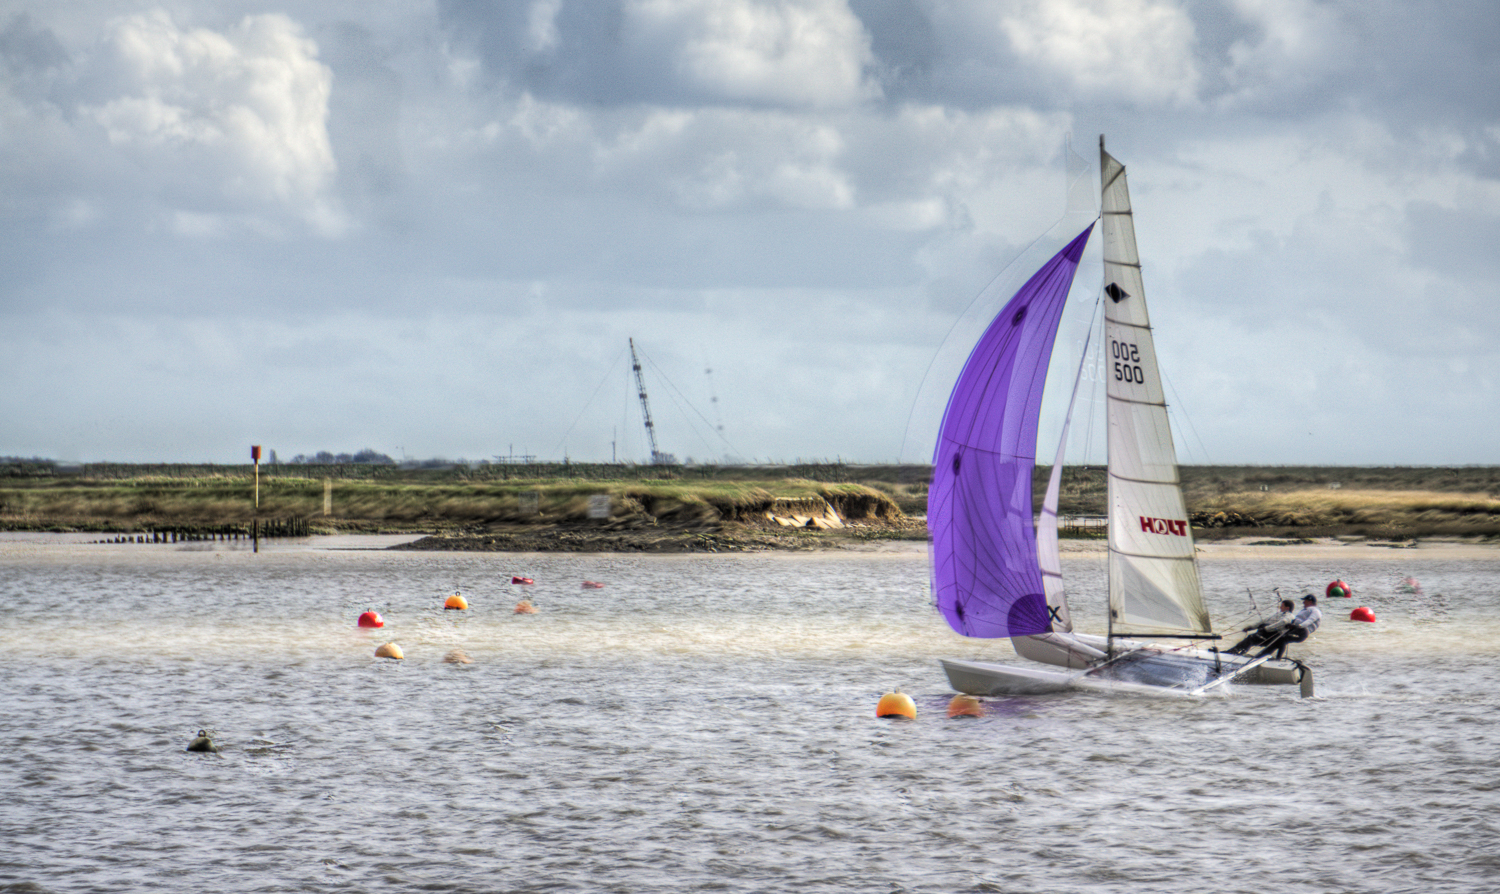 Burnham on Crouch - big yacht racing